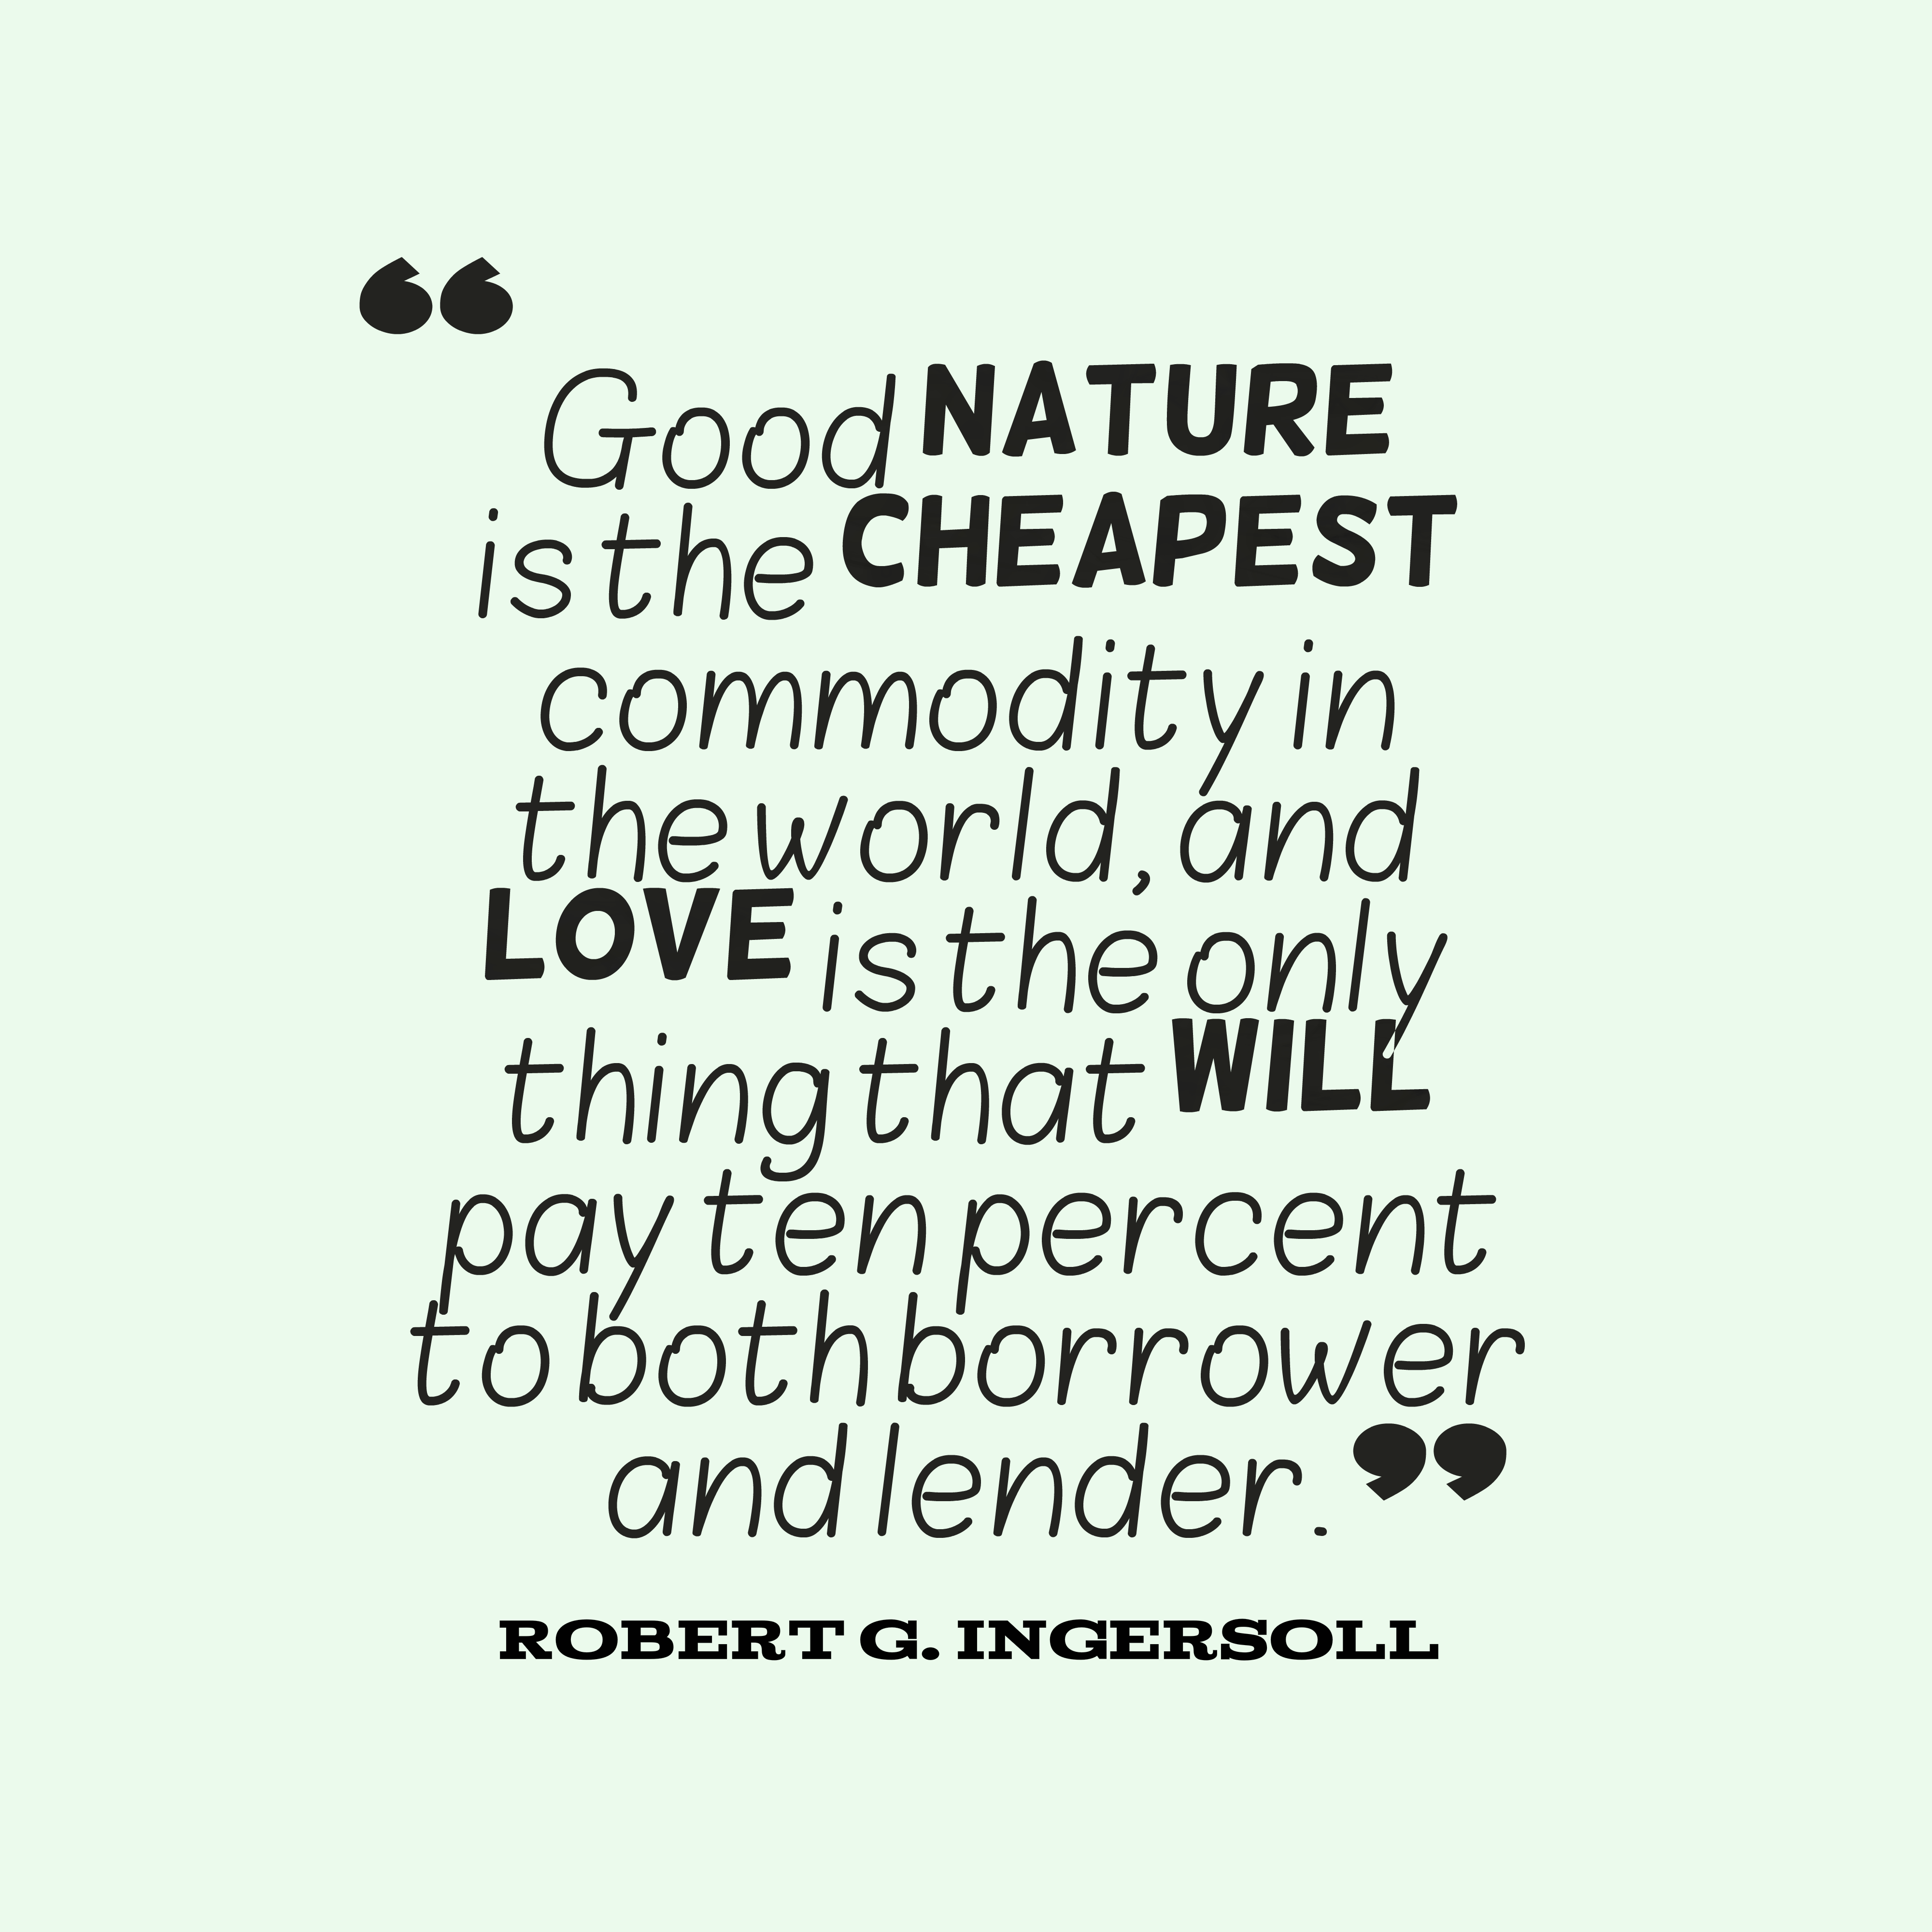 Quotes image of Good nature is the cheapest commodity in the world, and love is the only thing that will pay ten percent to both borrower and lender.